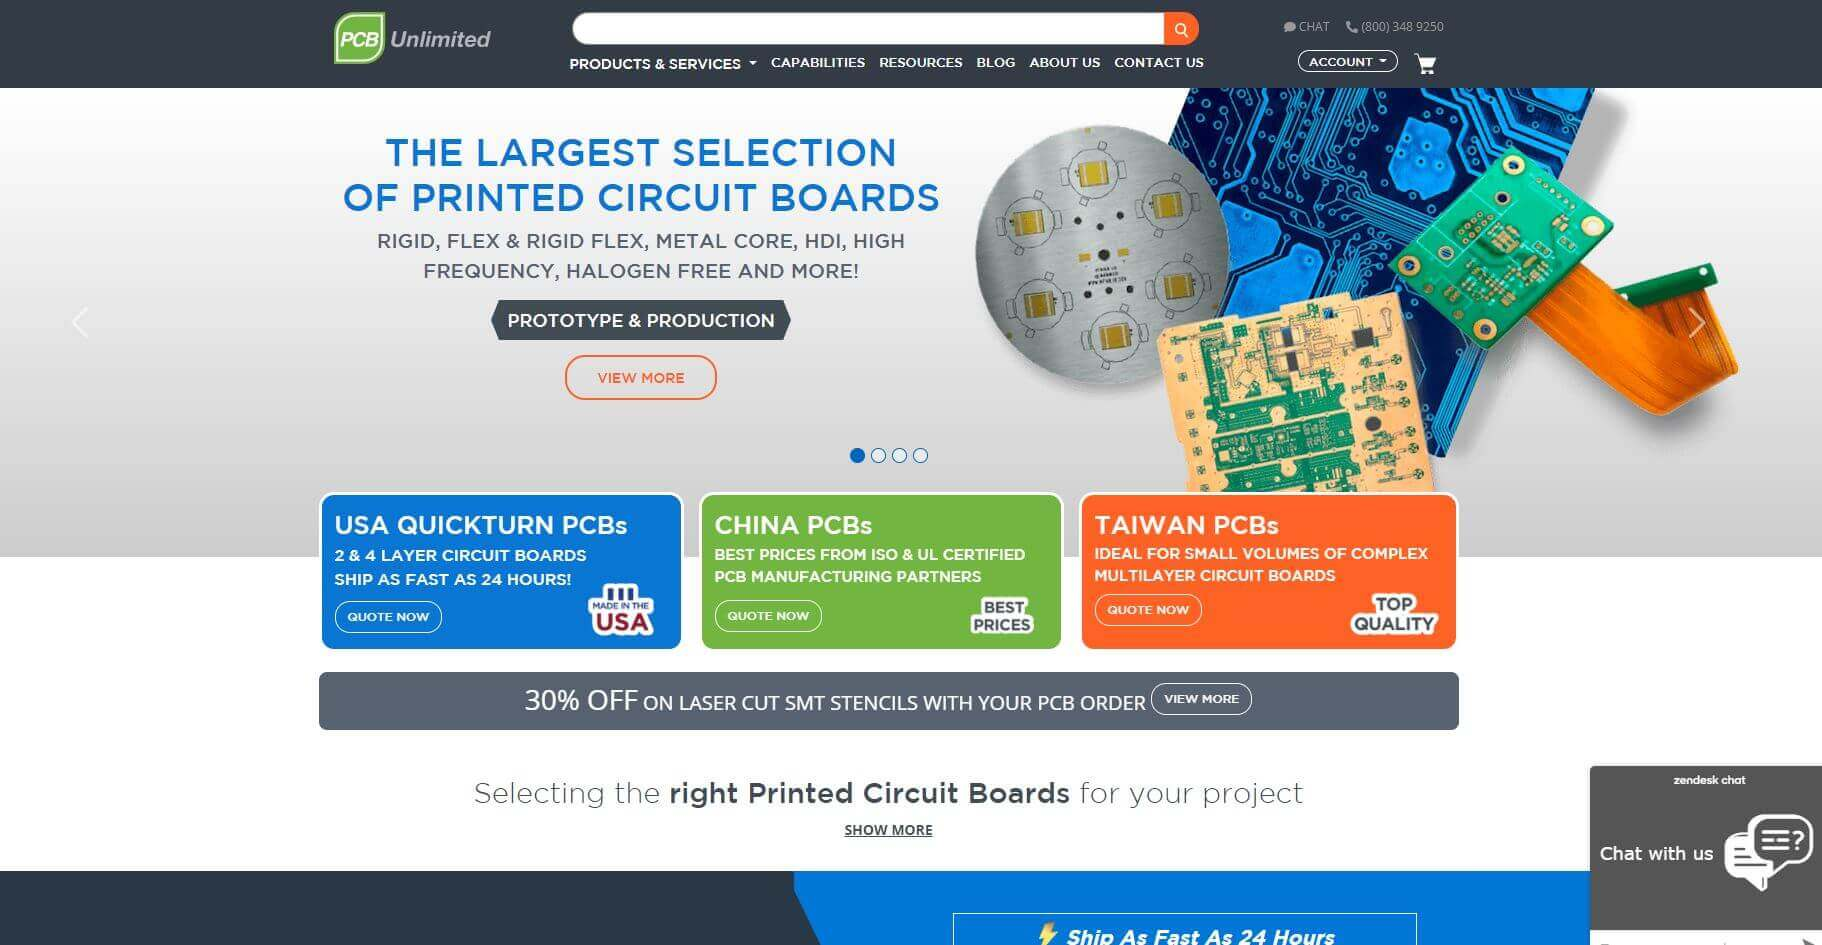 Pcb Unlimited